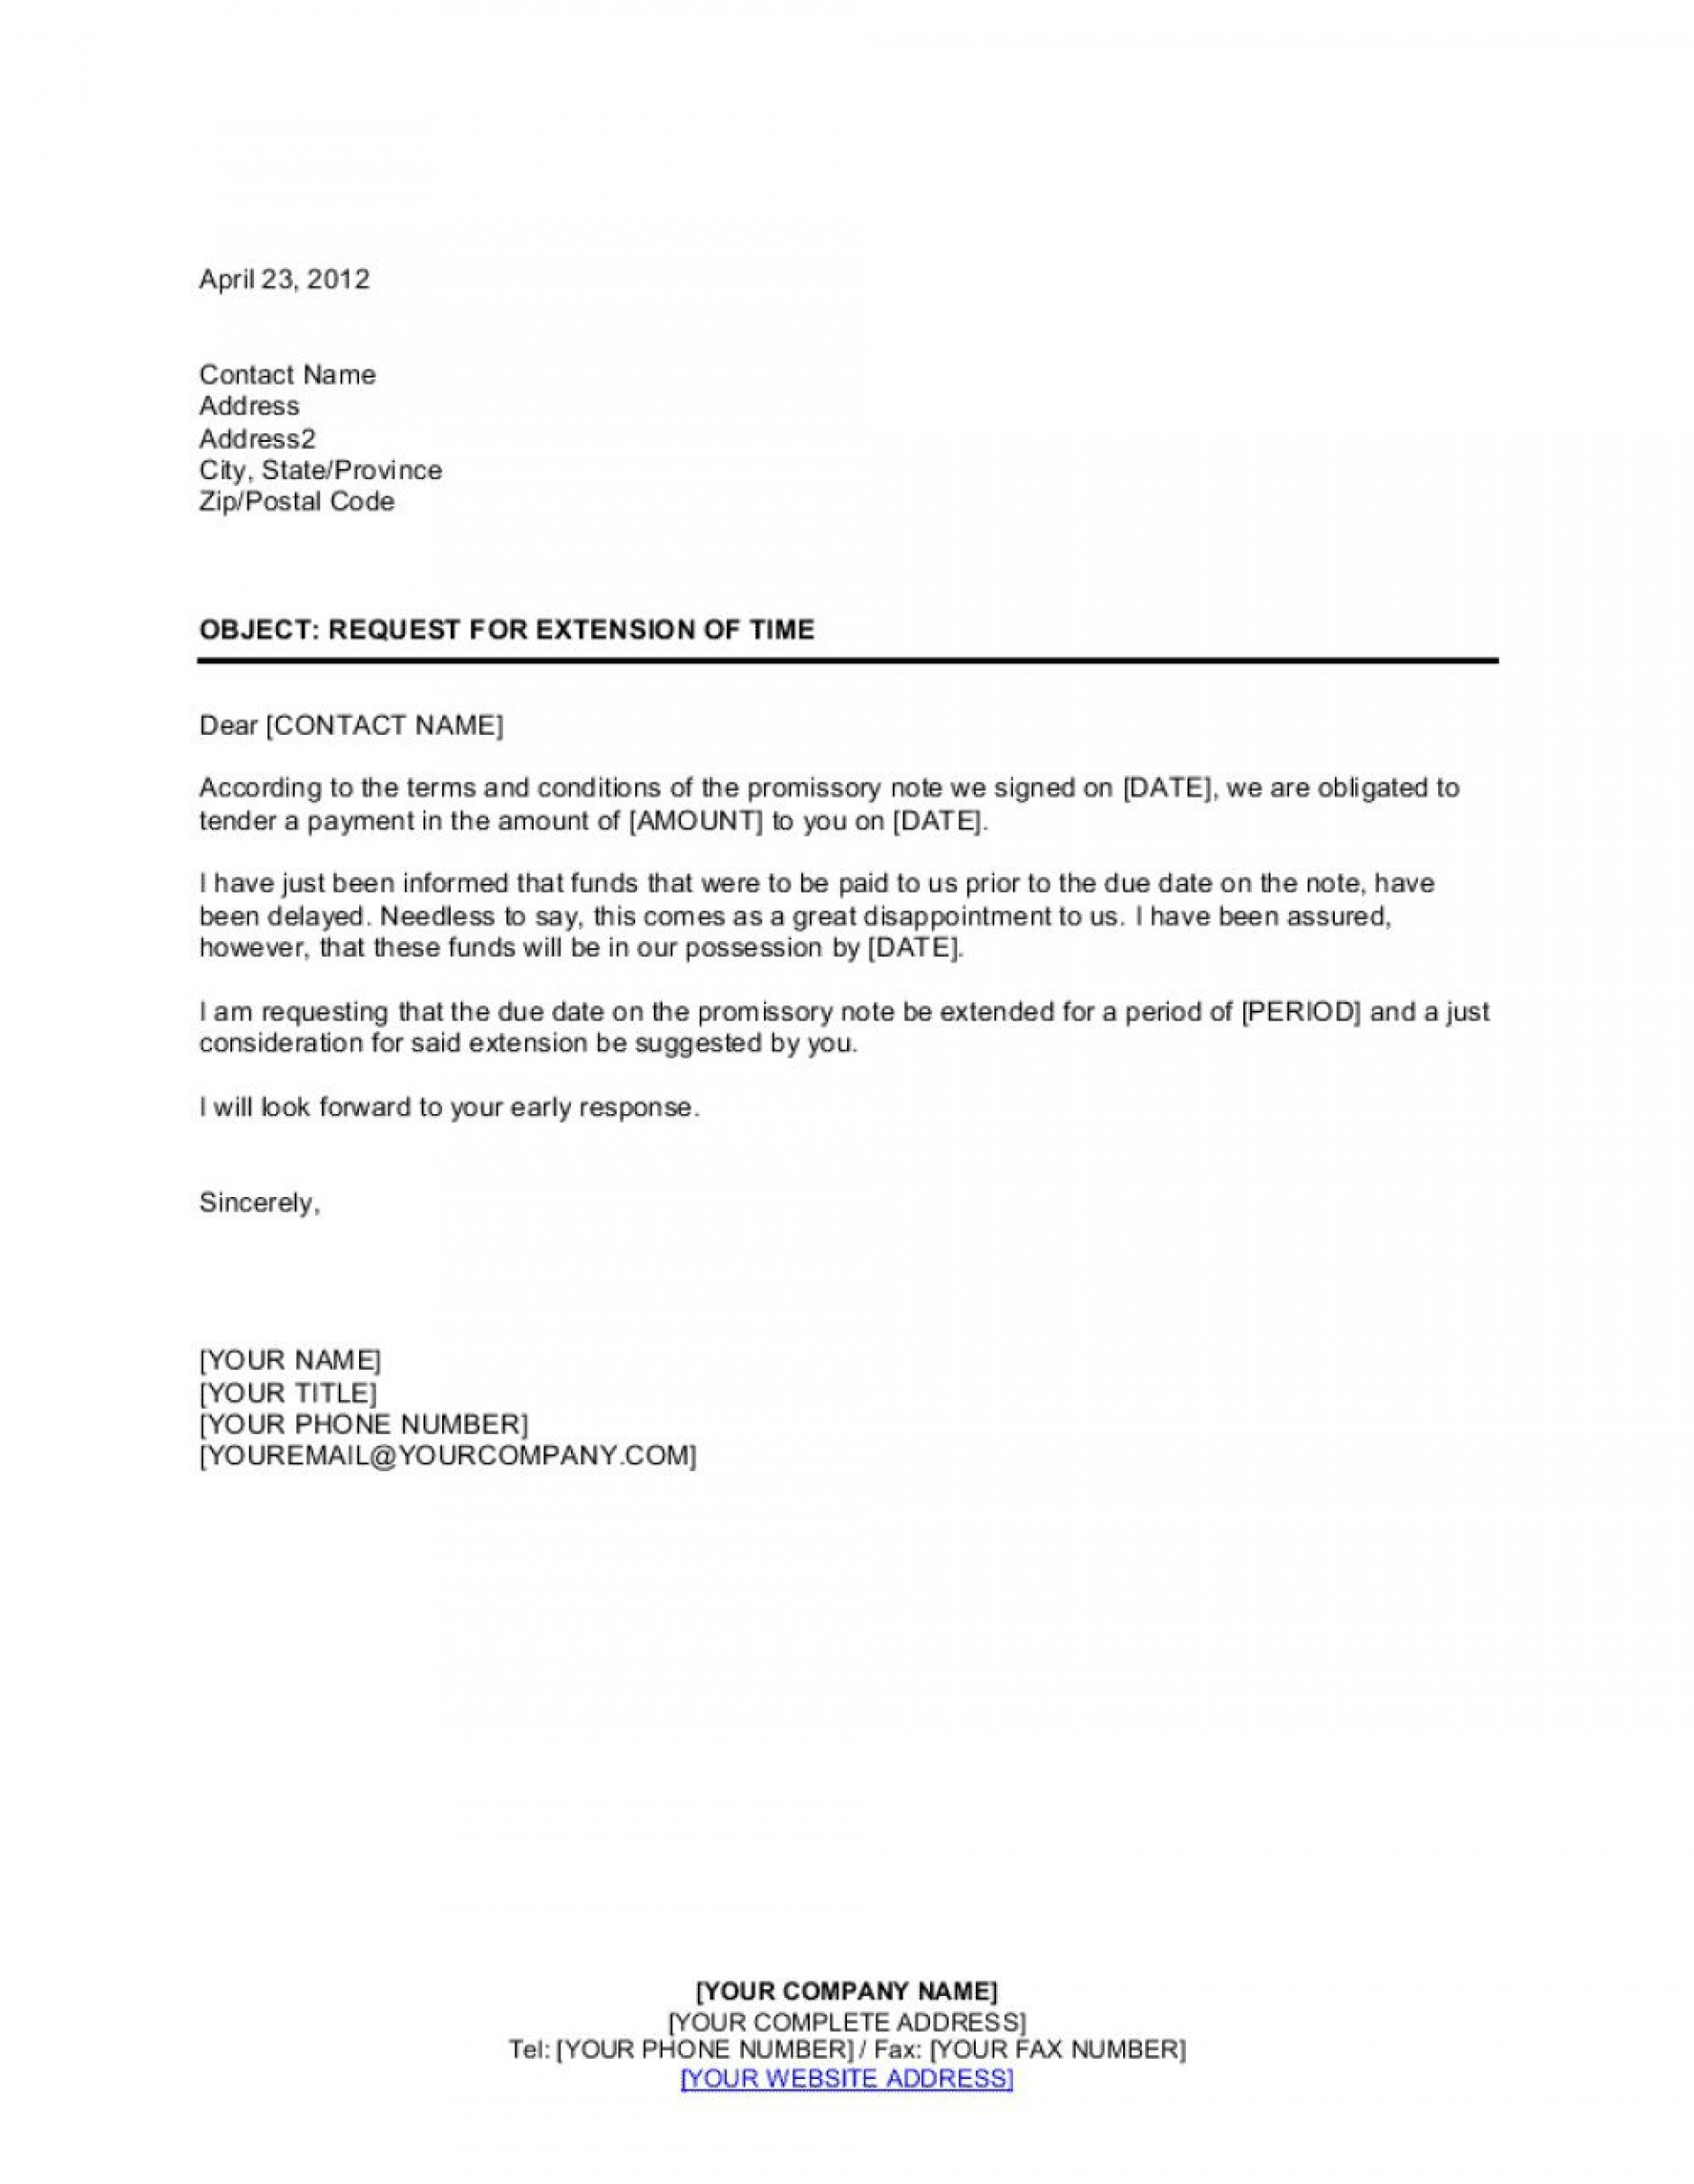 008 Impressive Blank Promissory Note Template Sample  Form Free Download1920